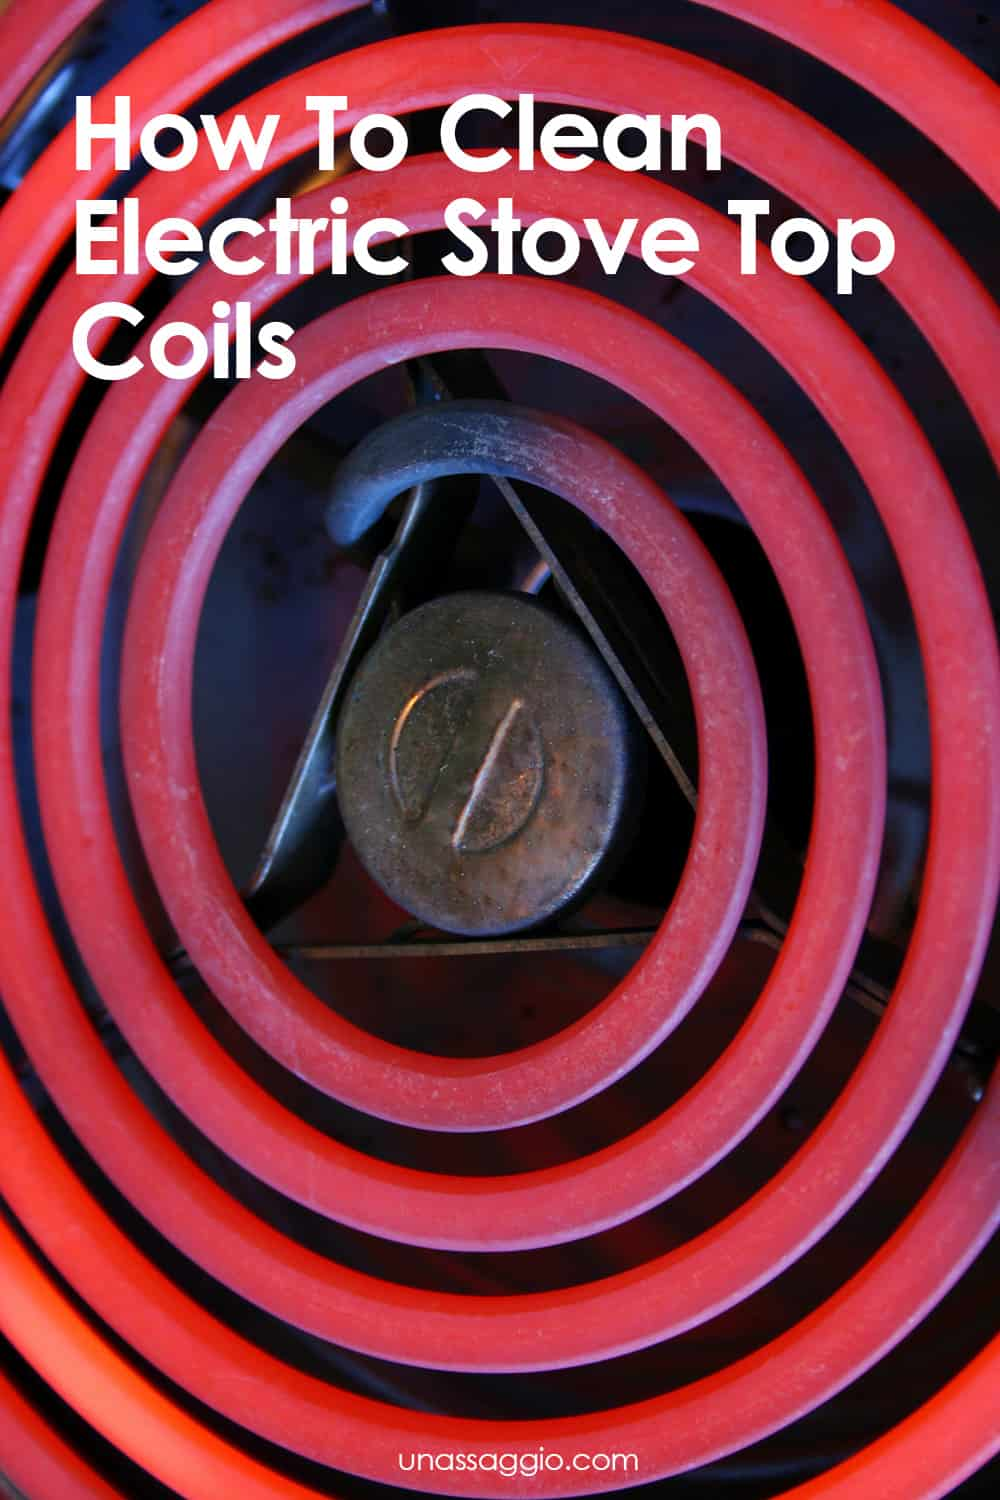 How To Clean Electric Stove Top Coils